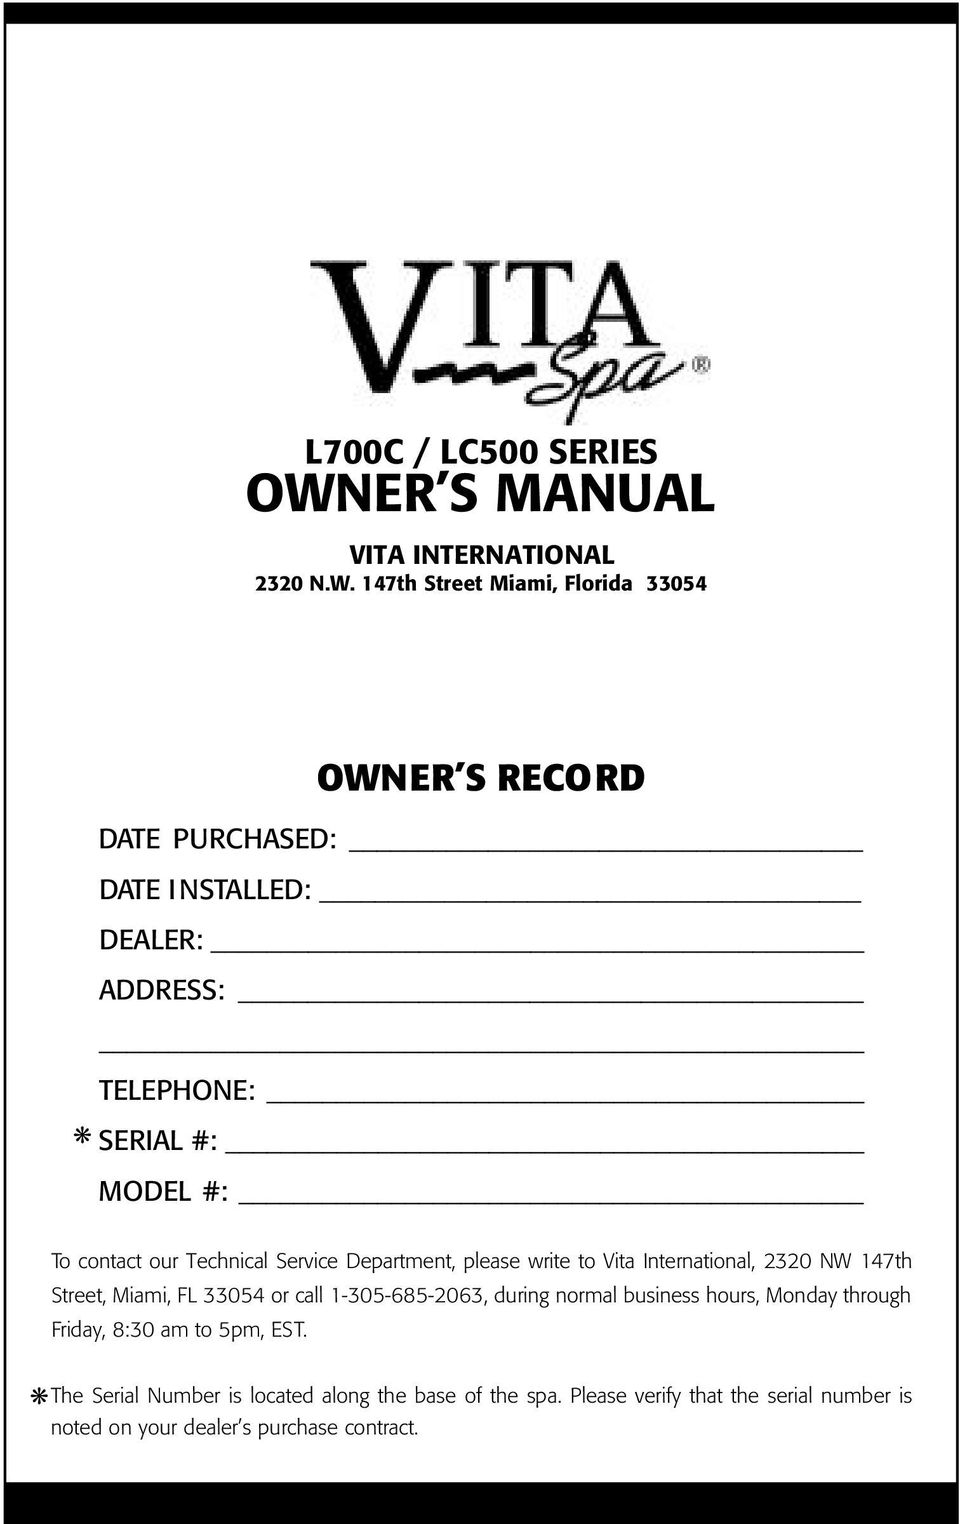 L700c Lc500 Series Owner S Manual Vita International 2320 Nw Master Spa Wiring Diagram 147th Street Miami Florida 33054 Record Date Purchased Installed Dealer